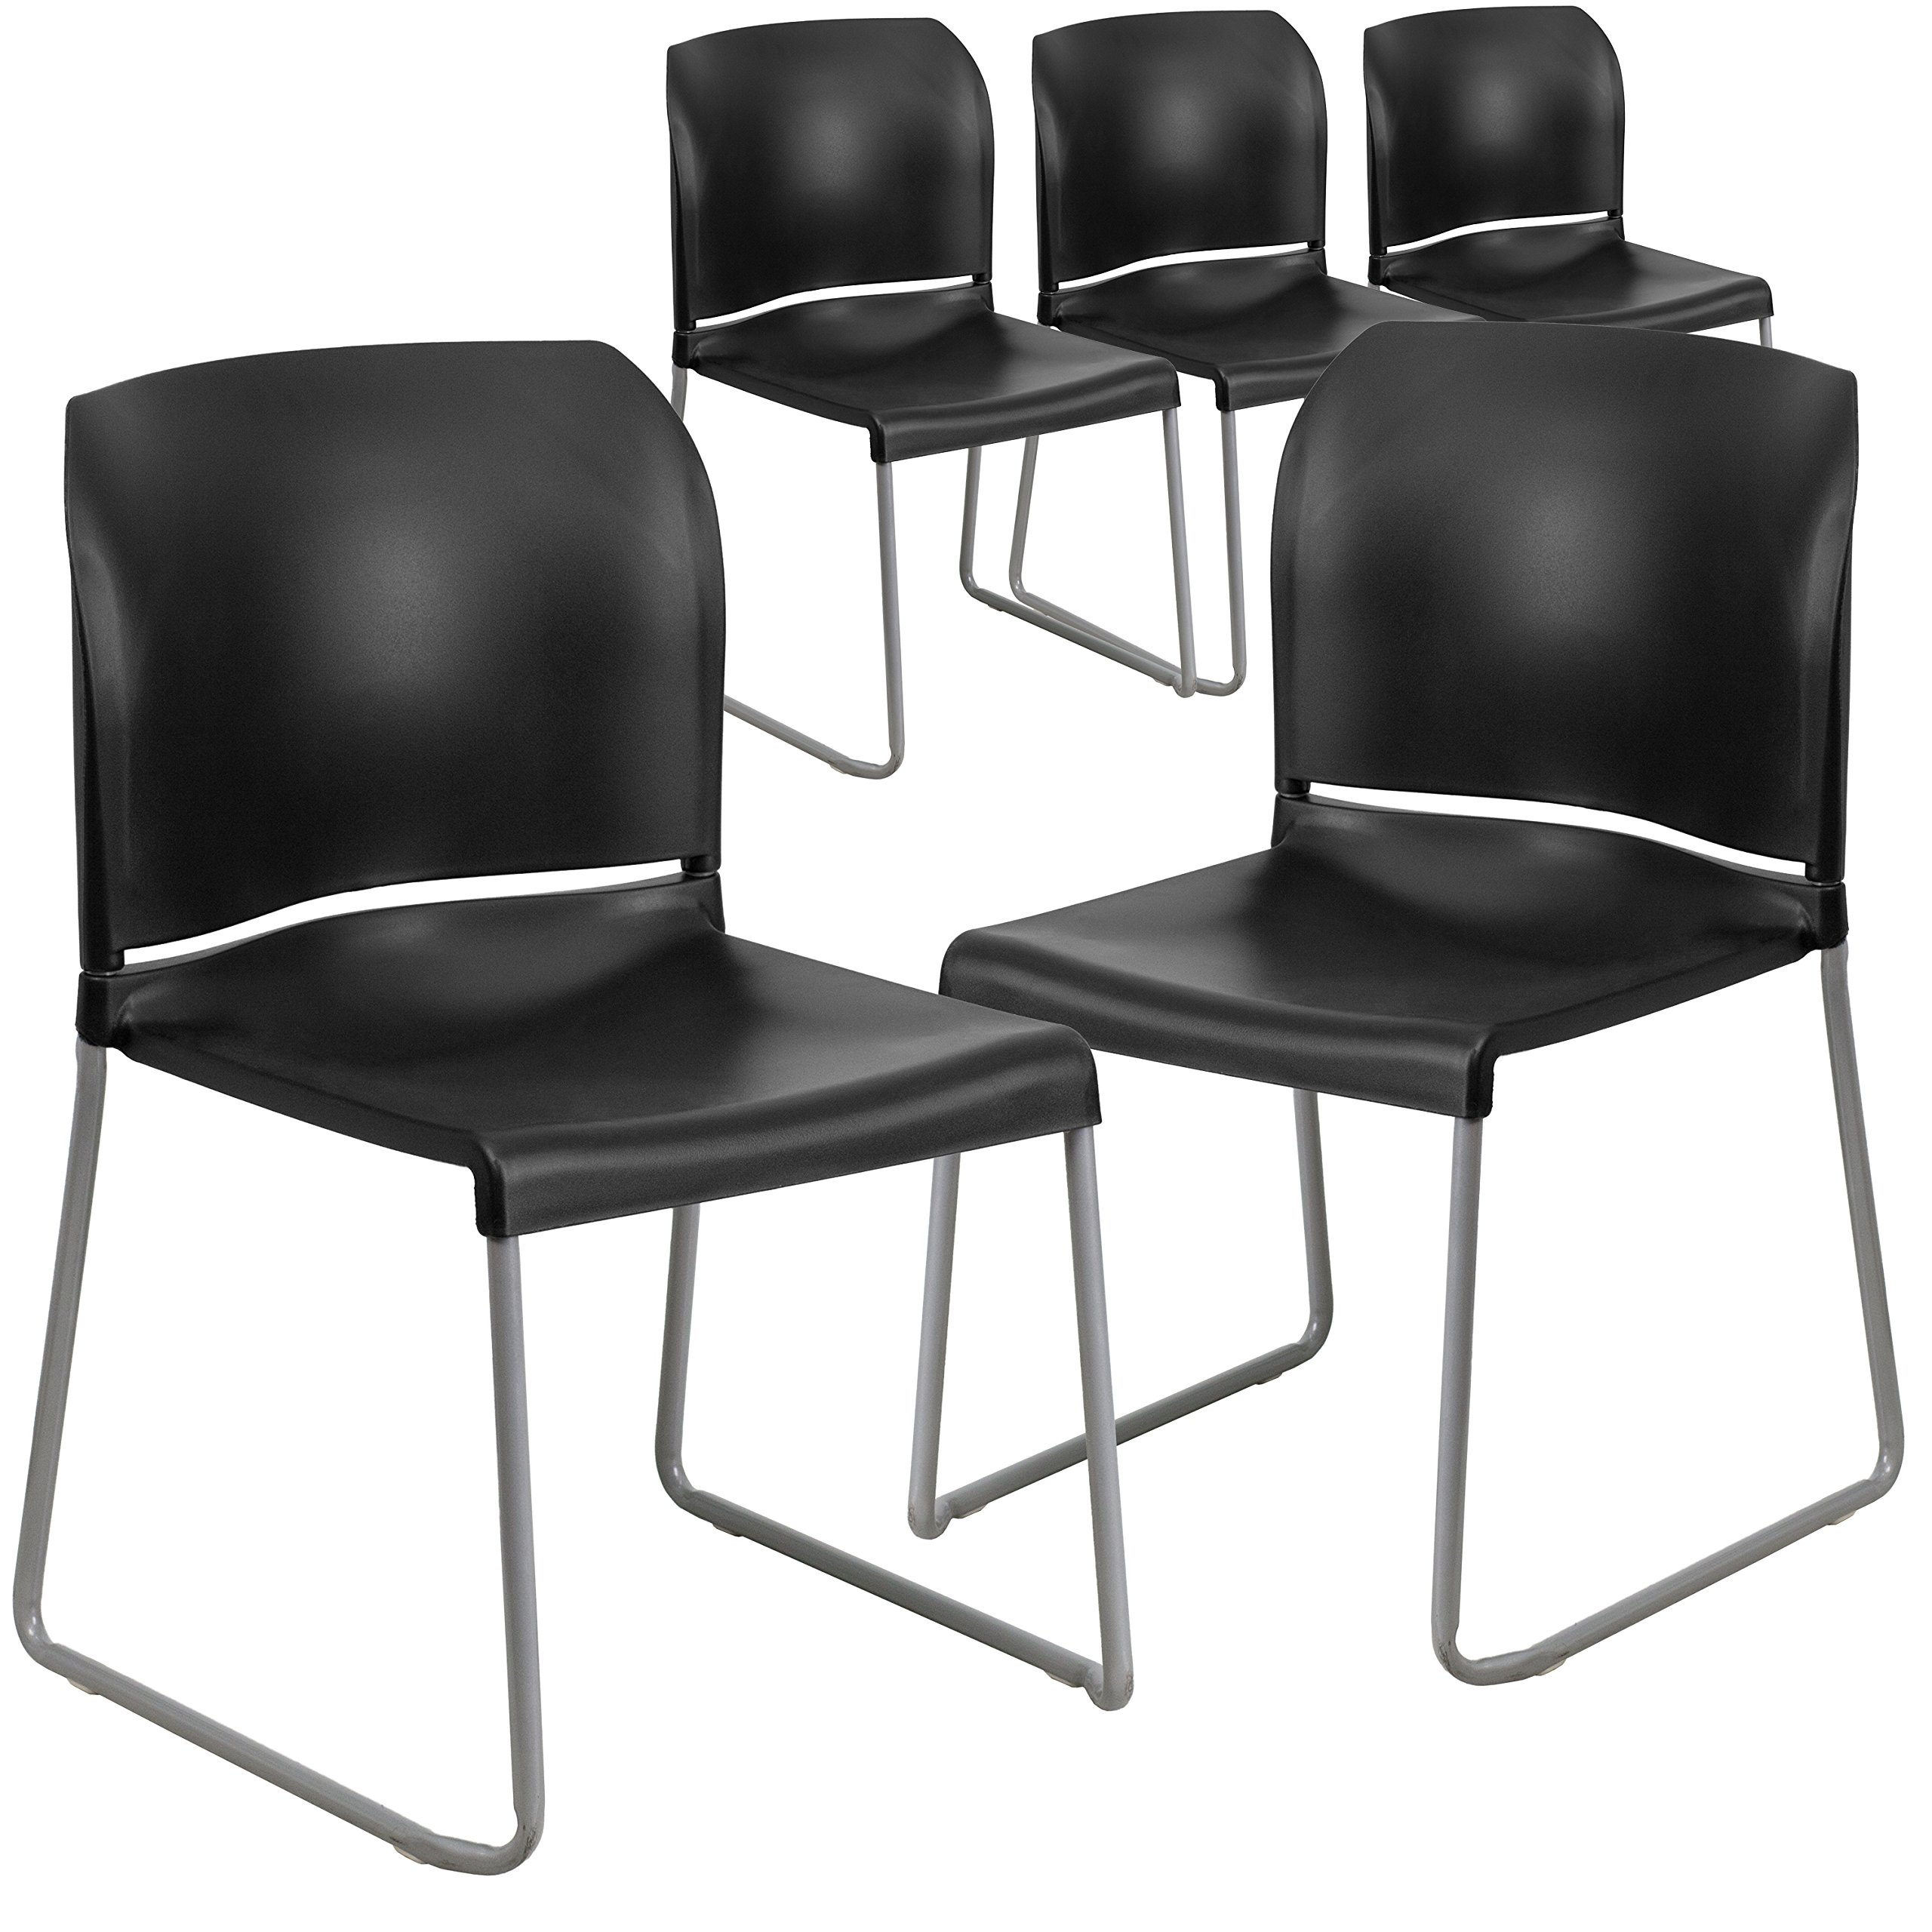 Flash Furniture 5 Pk. HERCULES Series 880 lb. Capacity Black Full Back Contoured Stack Chair with Sled Base by Flash Furniture